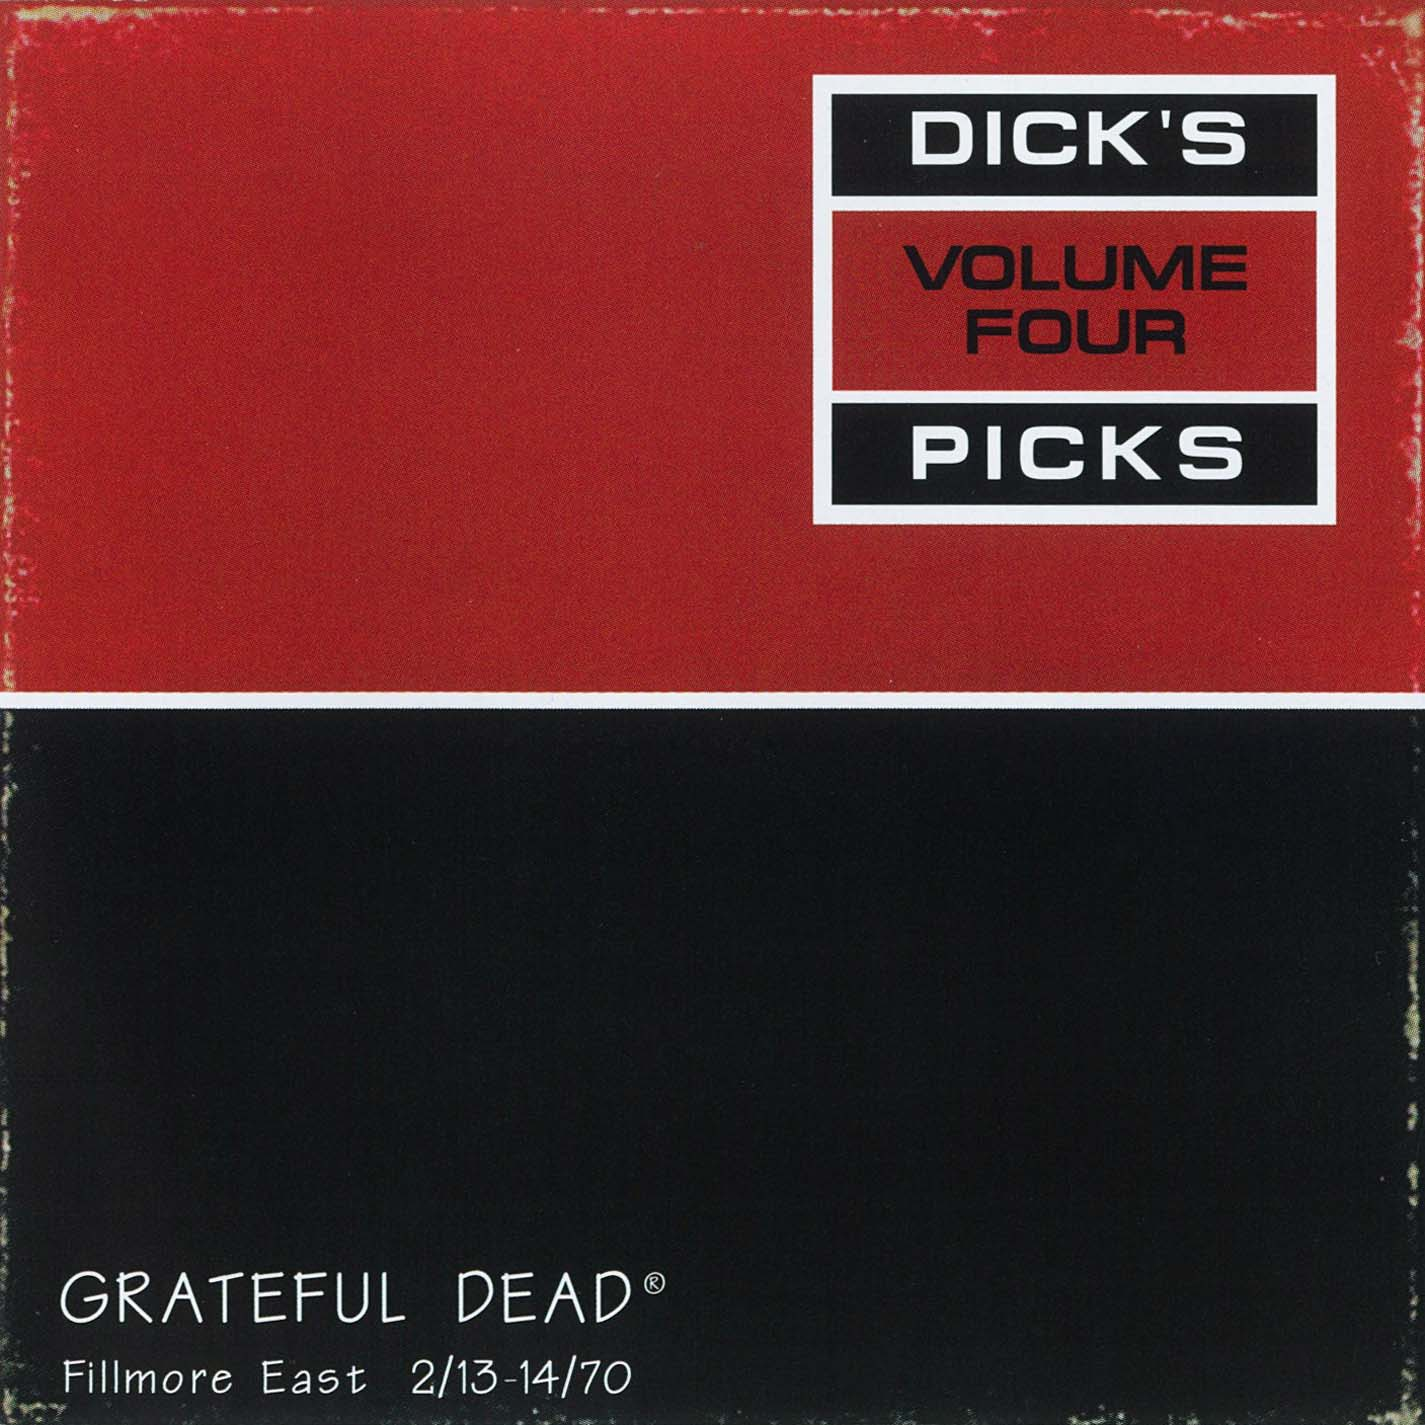 Grateful Dead Dick's Picks 4 album cover artwork